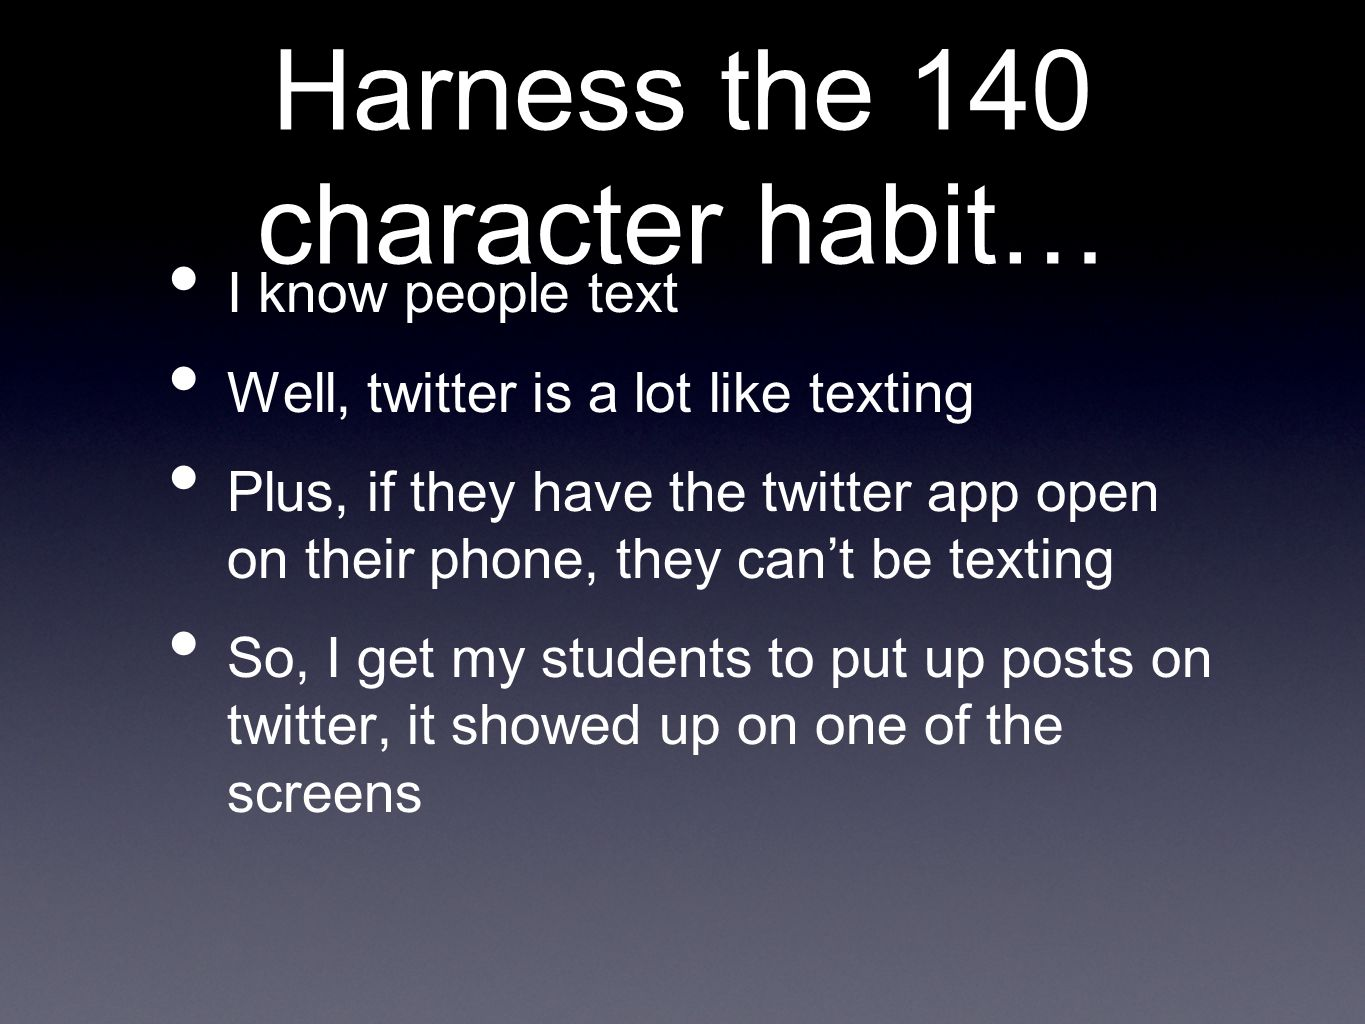 Harness the 140 character habit… I know people text Well, twitter is a lot like texting Plus, if they have the twitter app open on their phone, they can't be texting So, I get my students to put up posts on twitter, it showed up on one of the screens